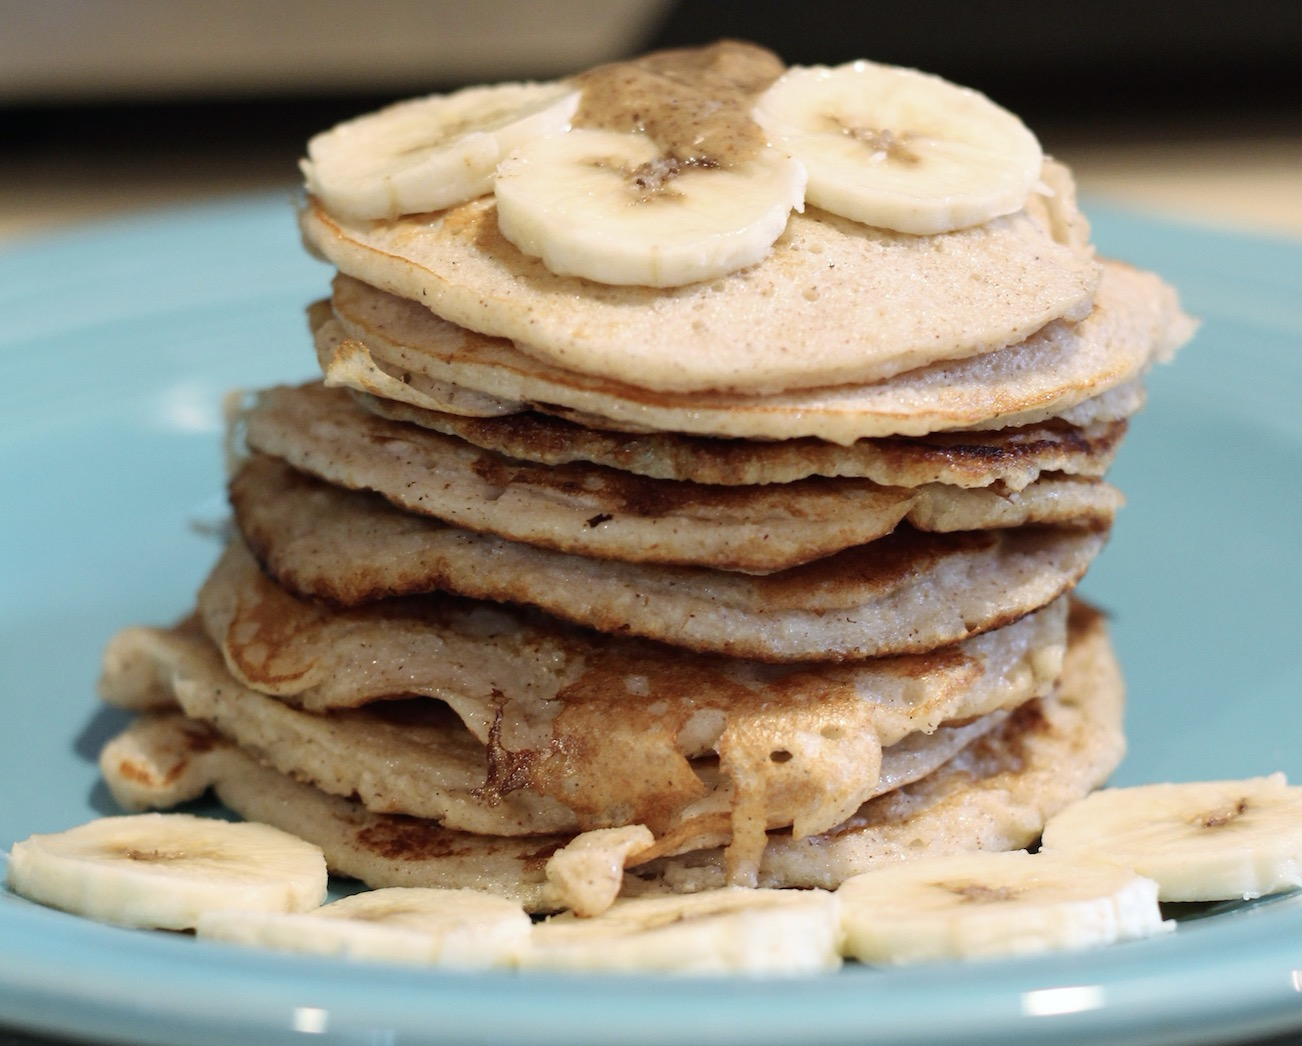 Stack up the pancakes and serve